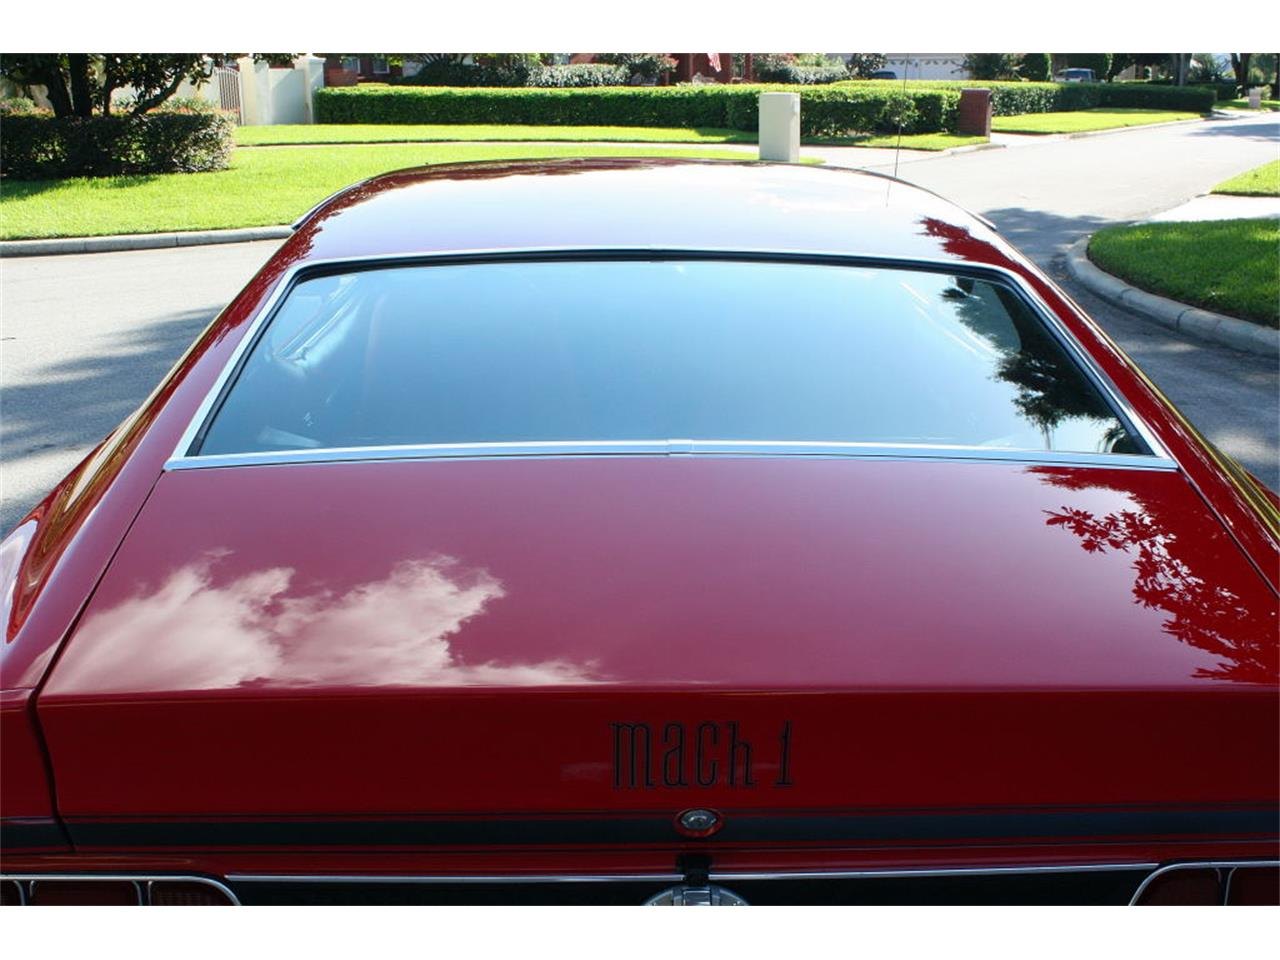 Large Picture of '72 Mustang located in Florida - $39,500.00 - MGWW